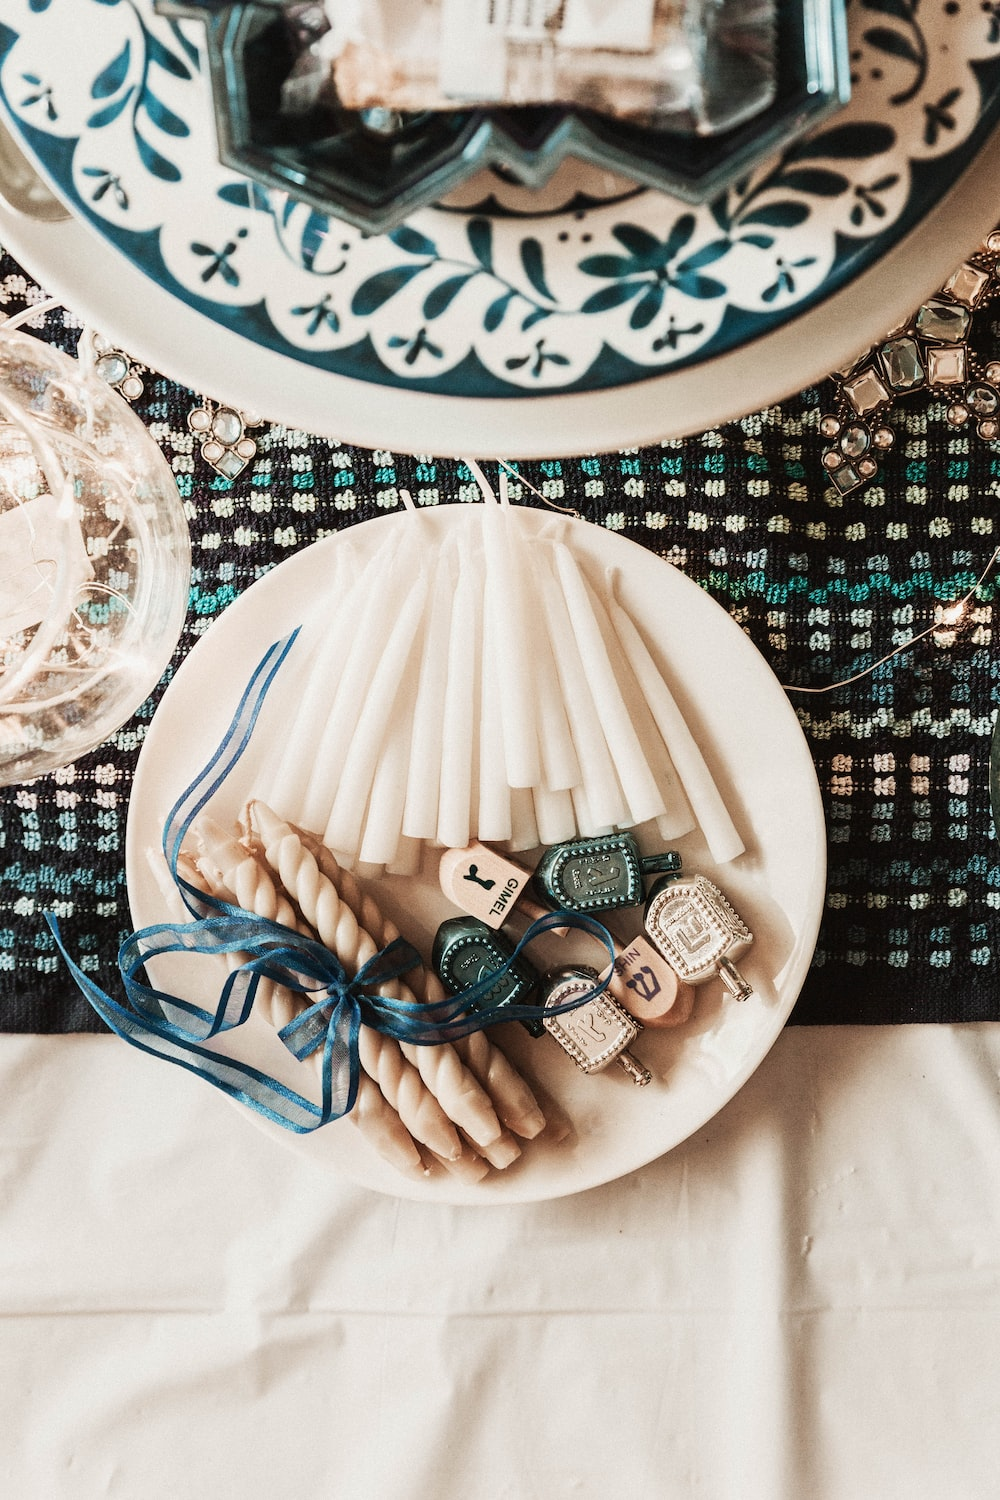 white candles on plate